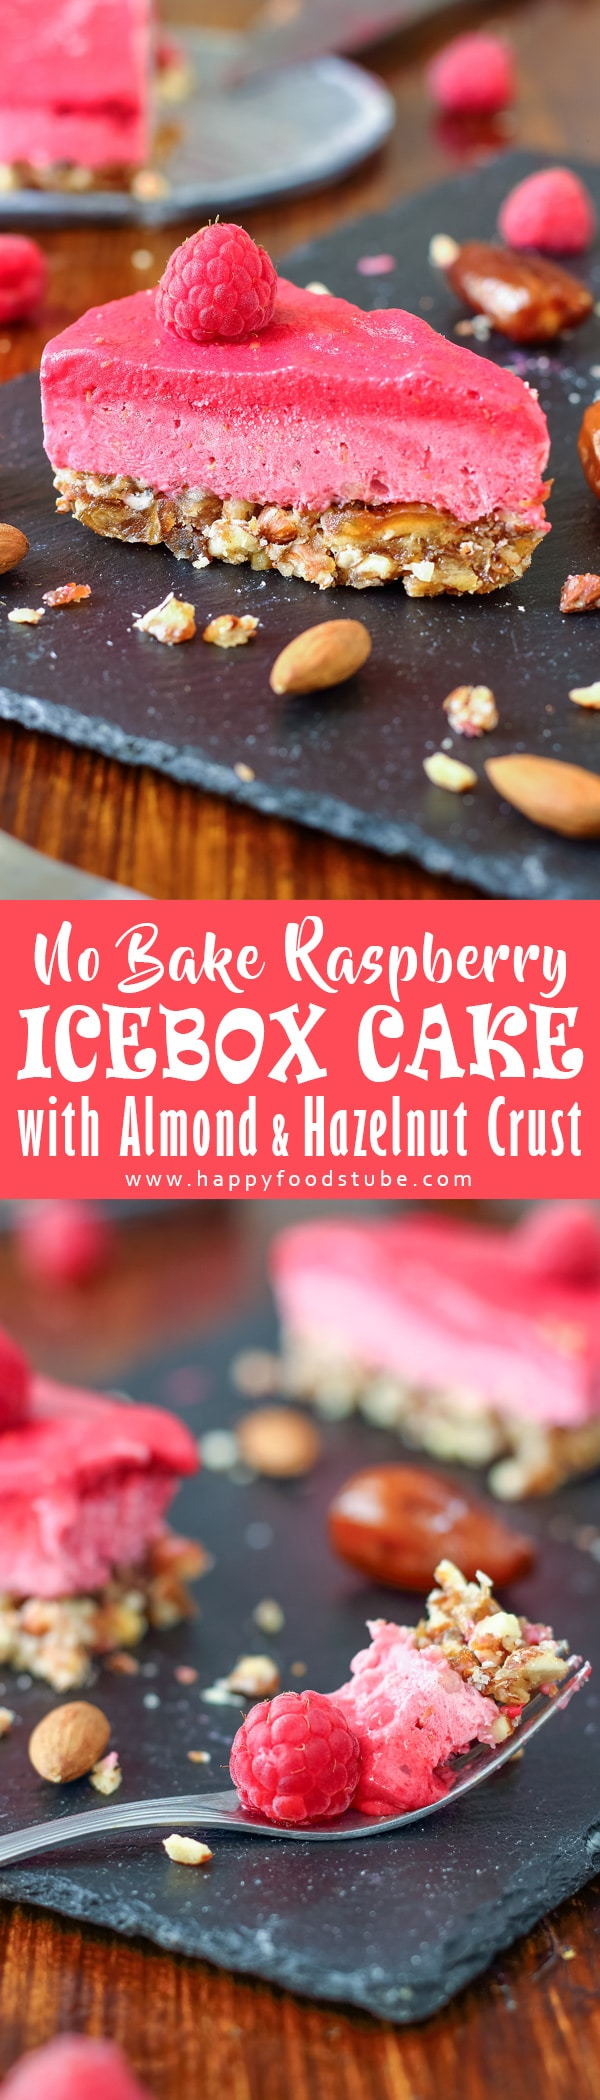 No bake raspberry icebox cake with almond & hazelnut crust. Easy to make dessert recipe, creamy texture with lots of natural sweetness thanks to dates, bananas and raspberries